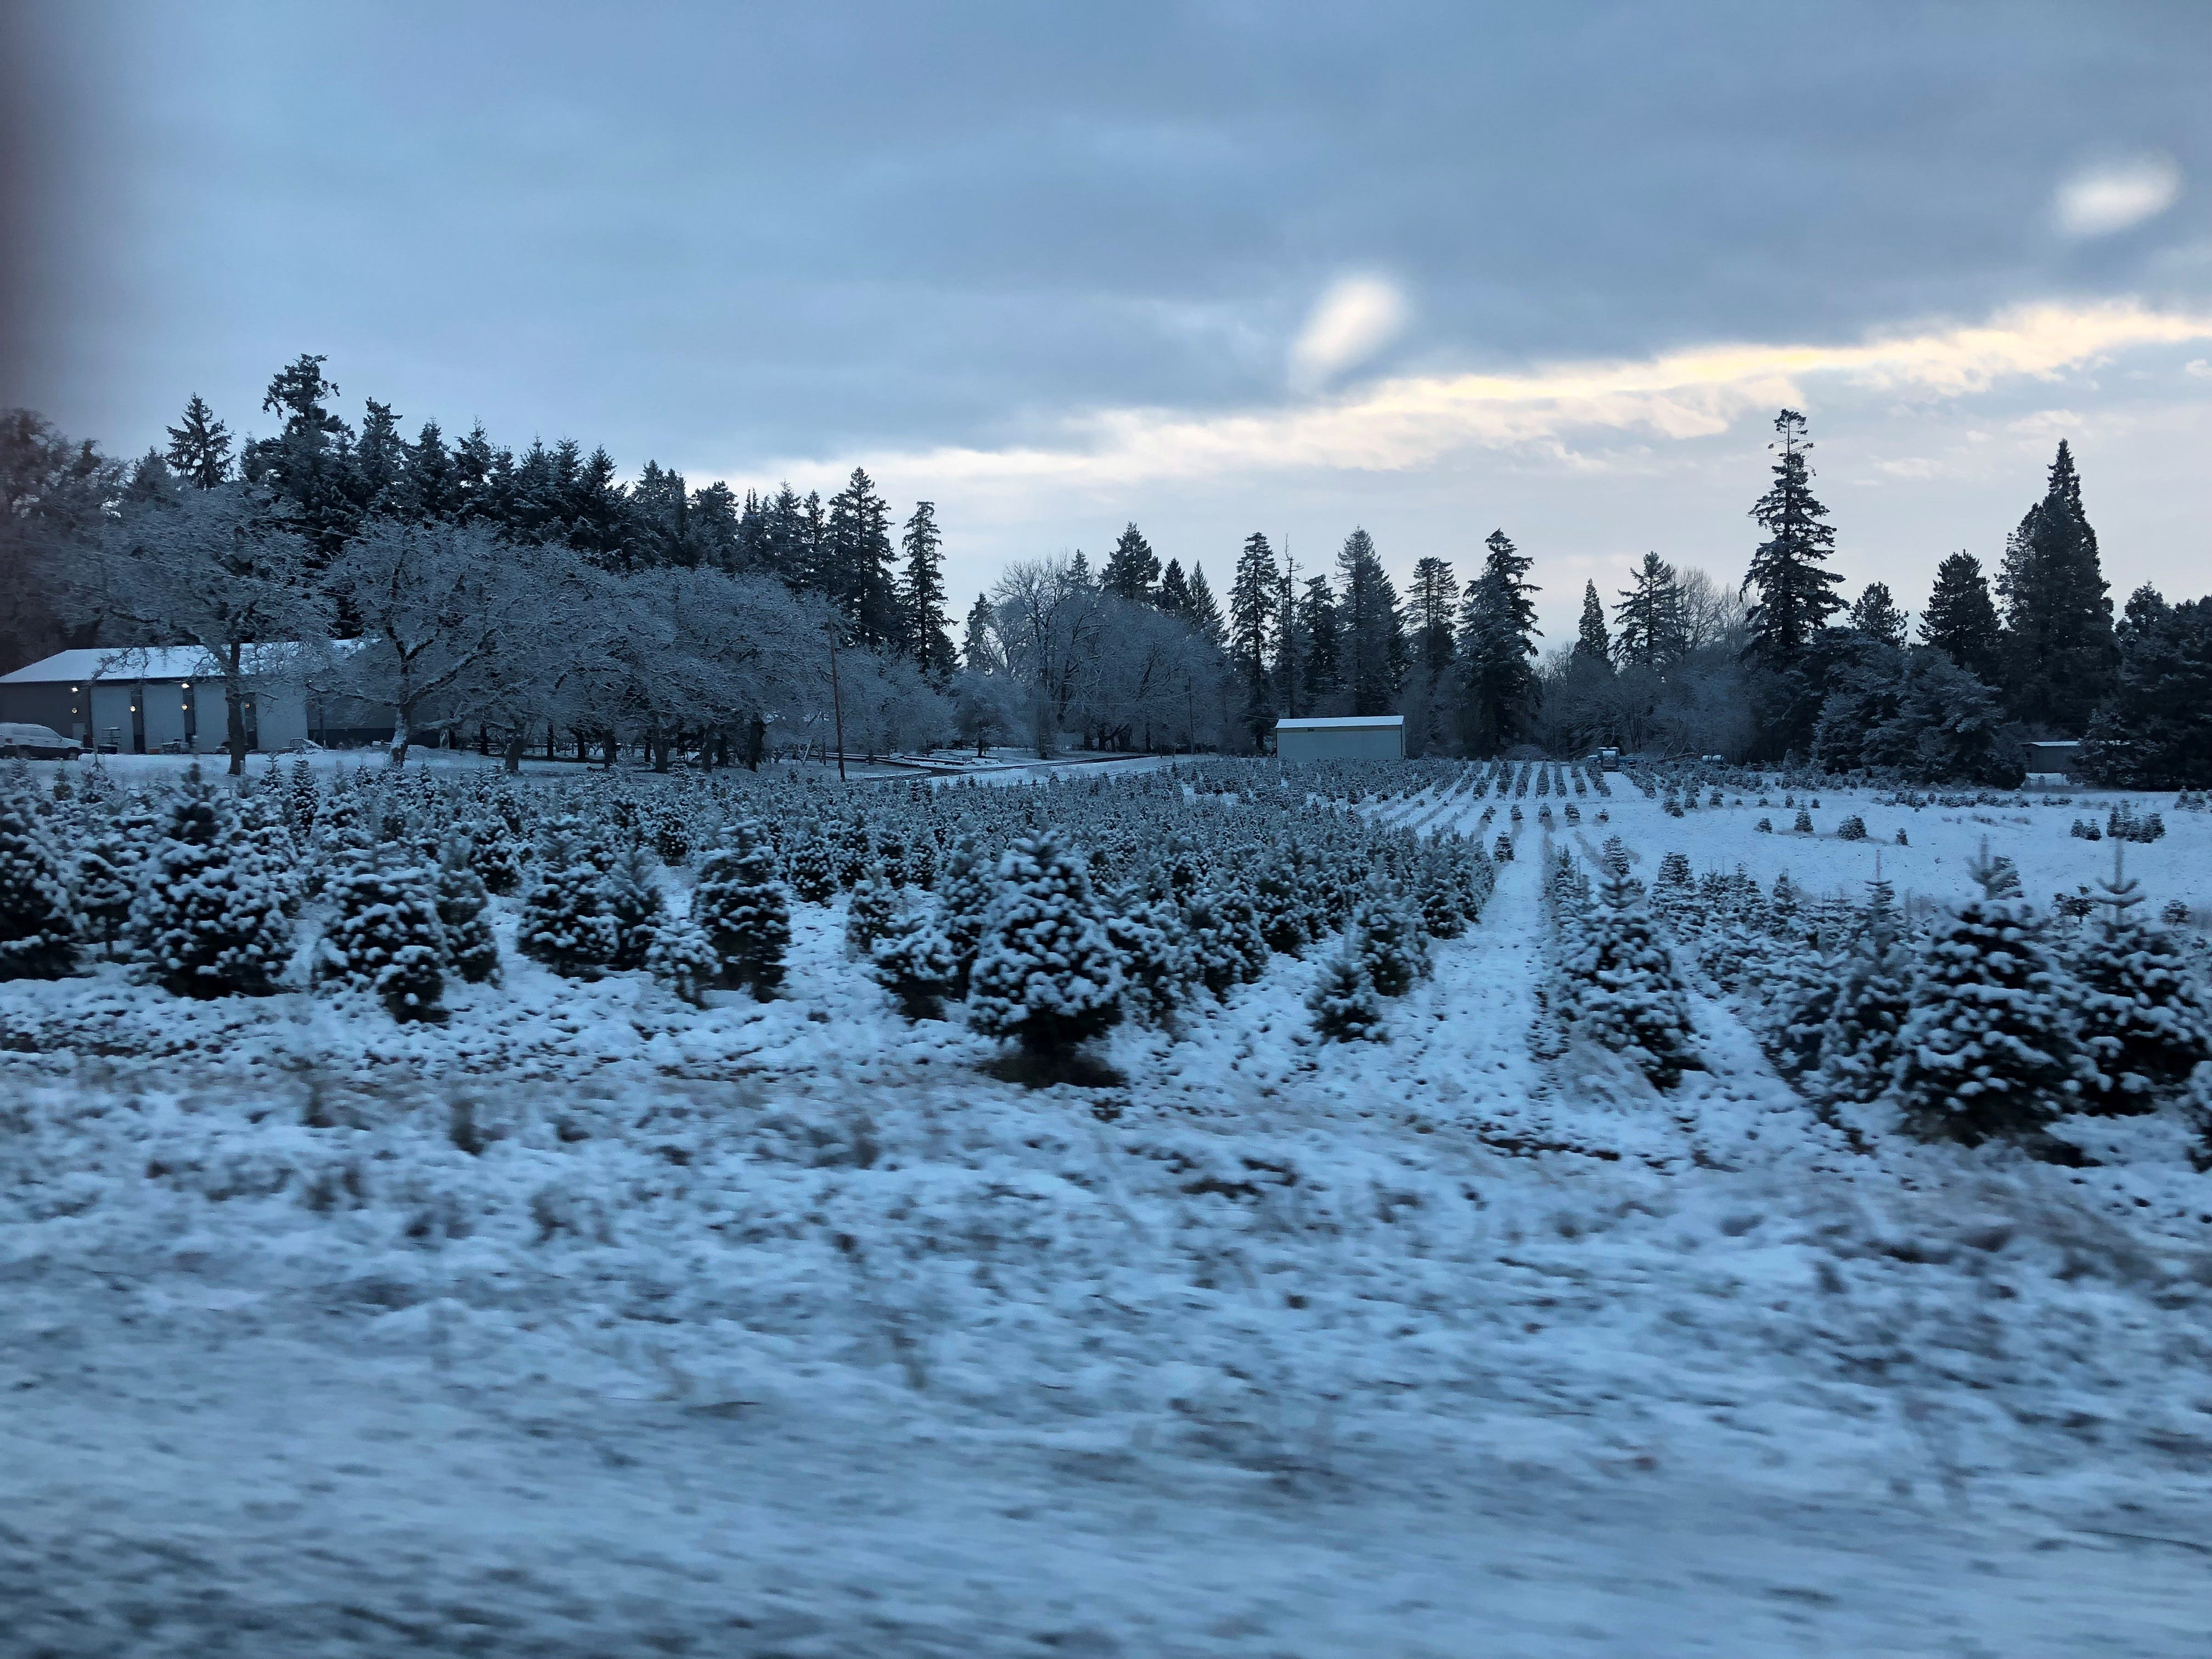 Snow covers fields in Polk County early Tuesday, February 5, 2019.